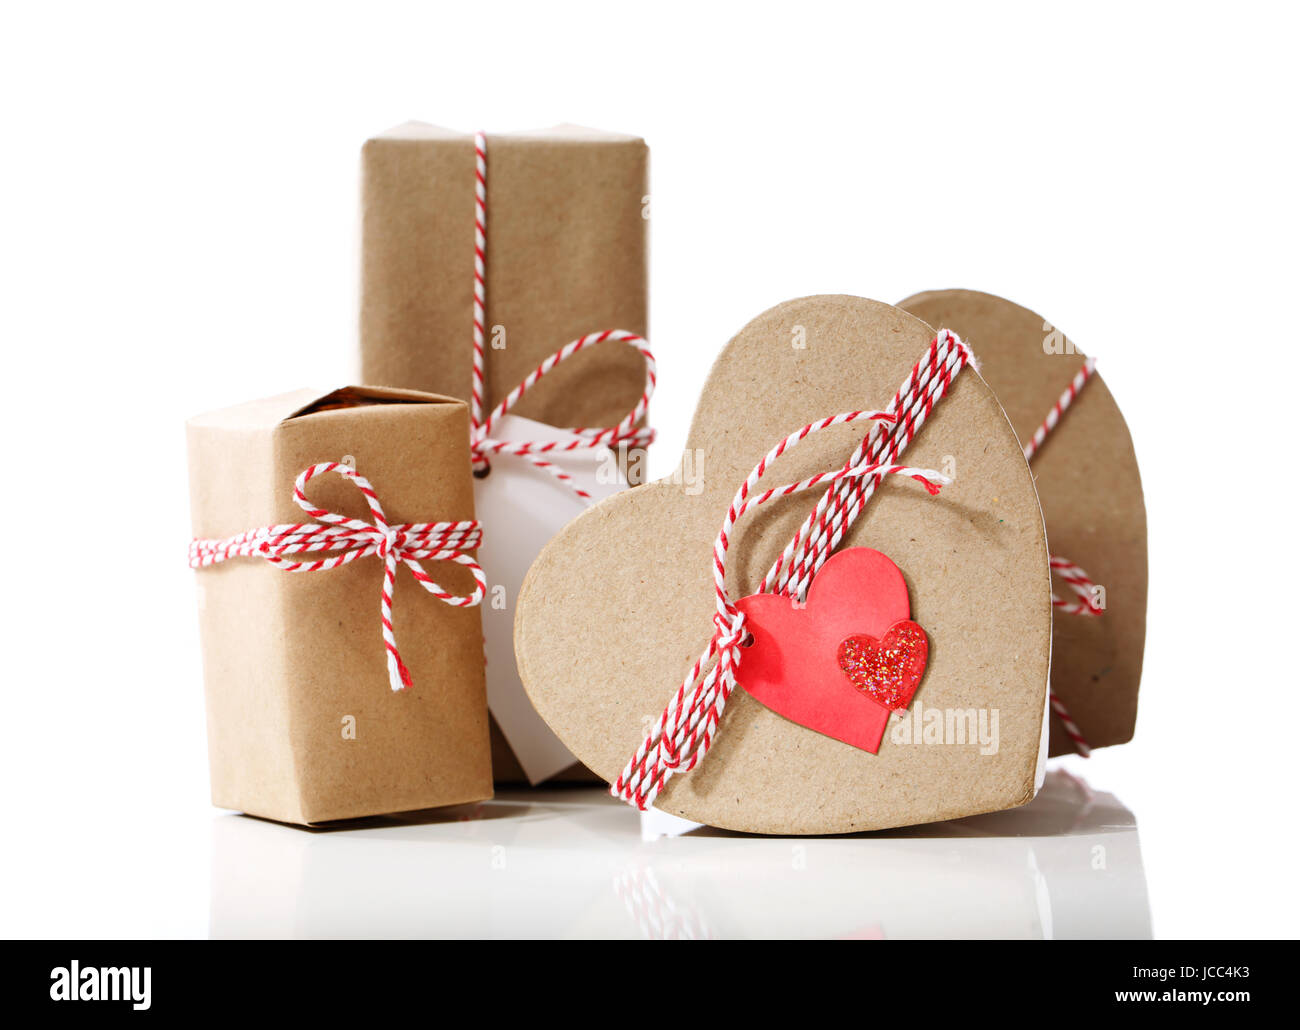 Small Handmade Gift Boxes Isolated On White Background Stock Photo